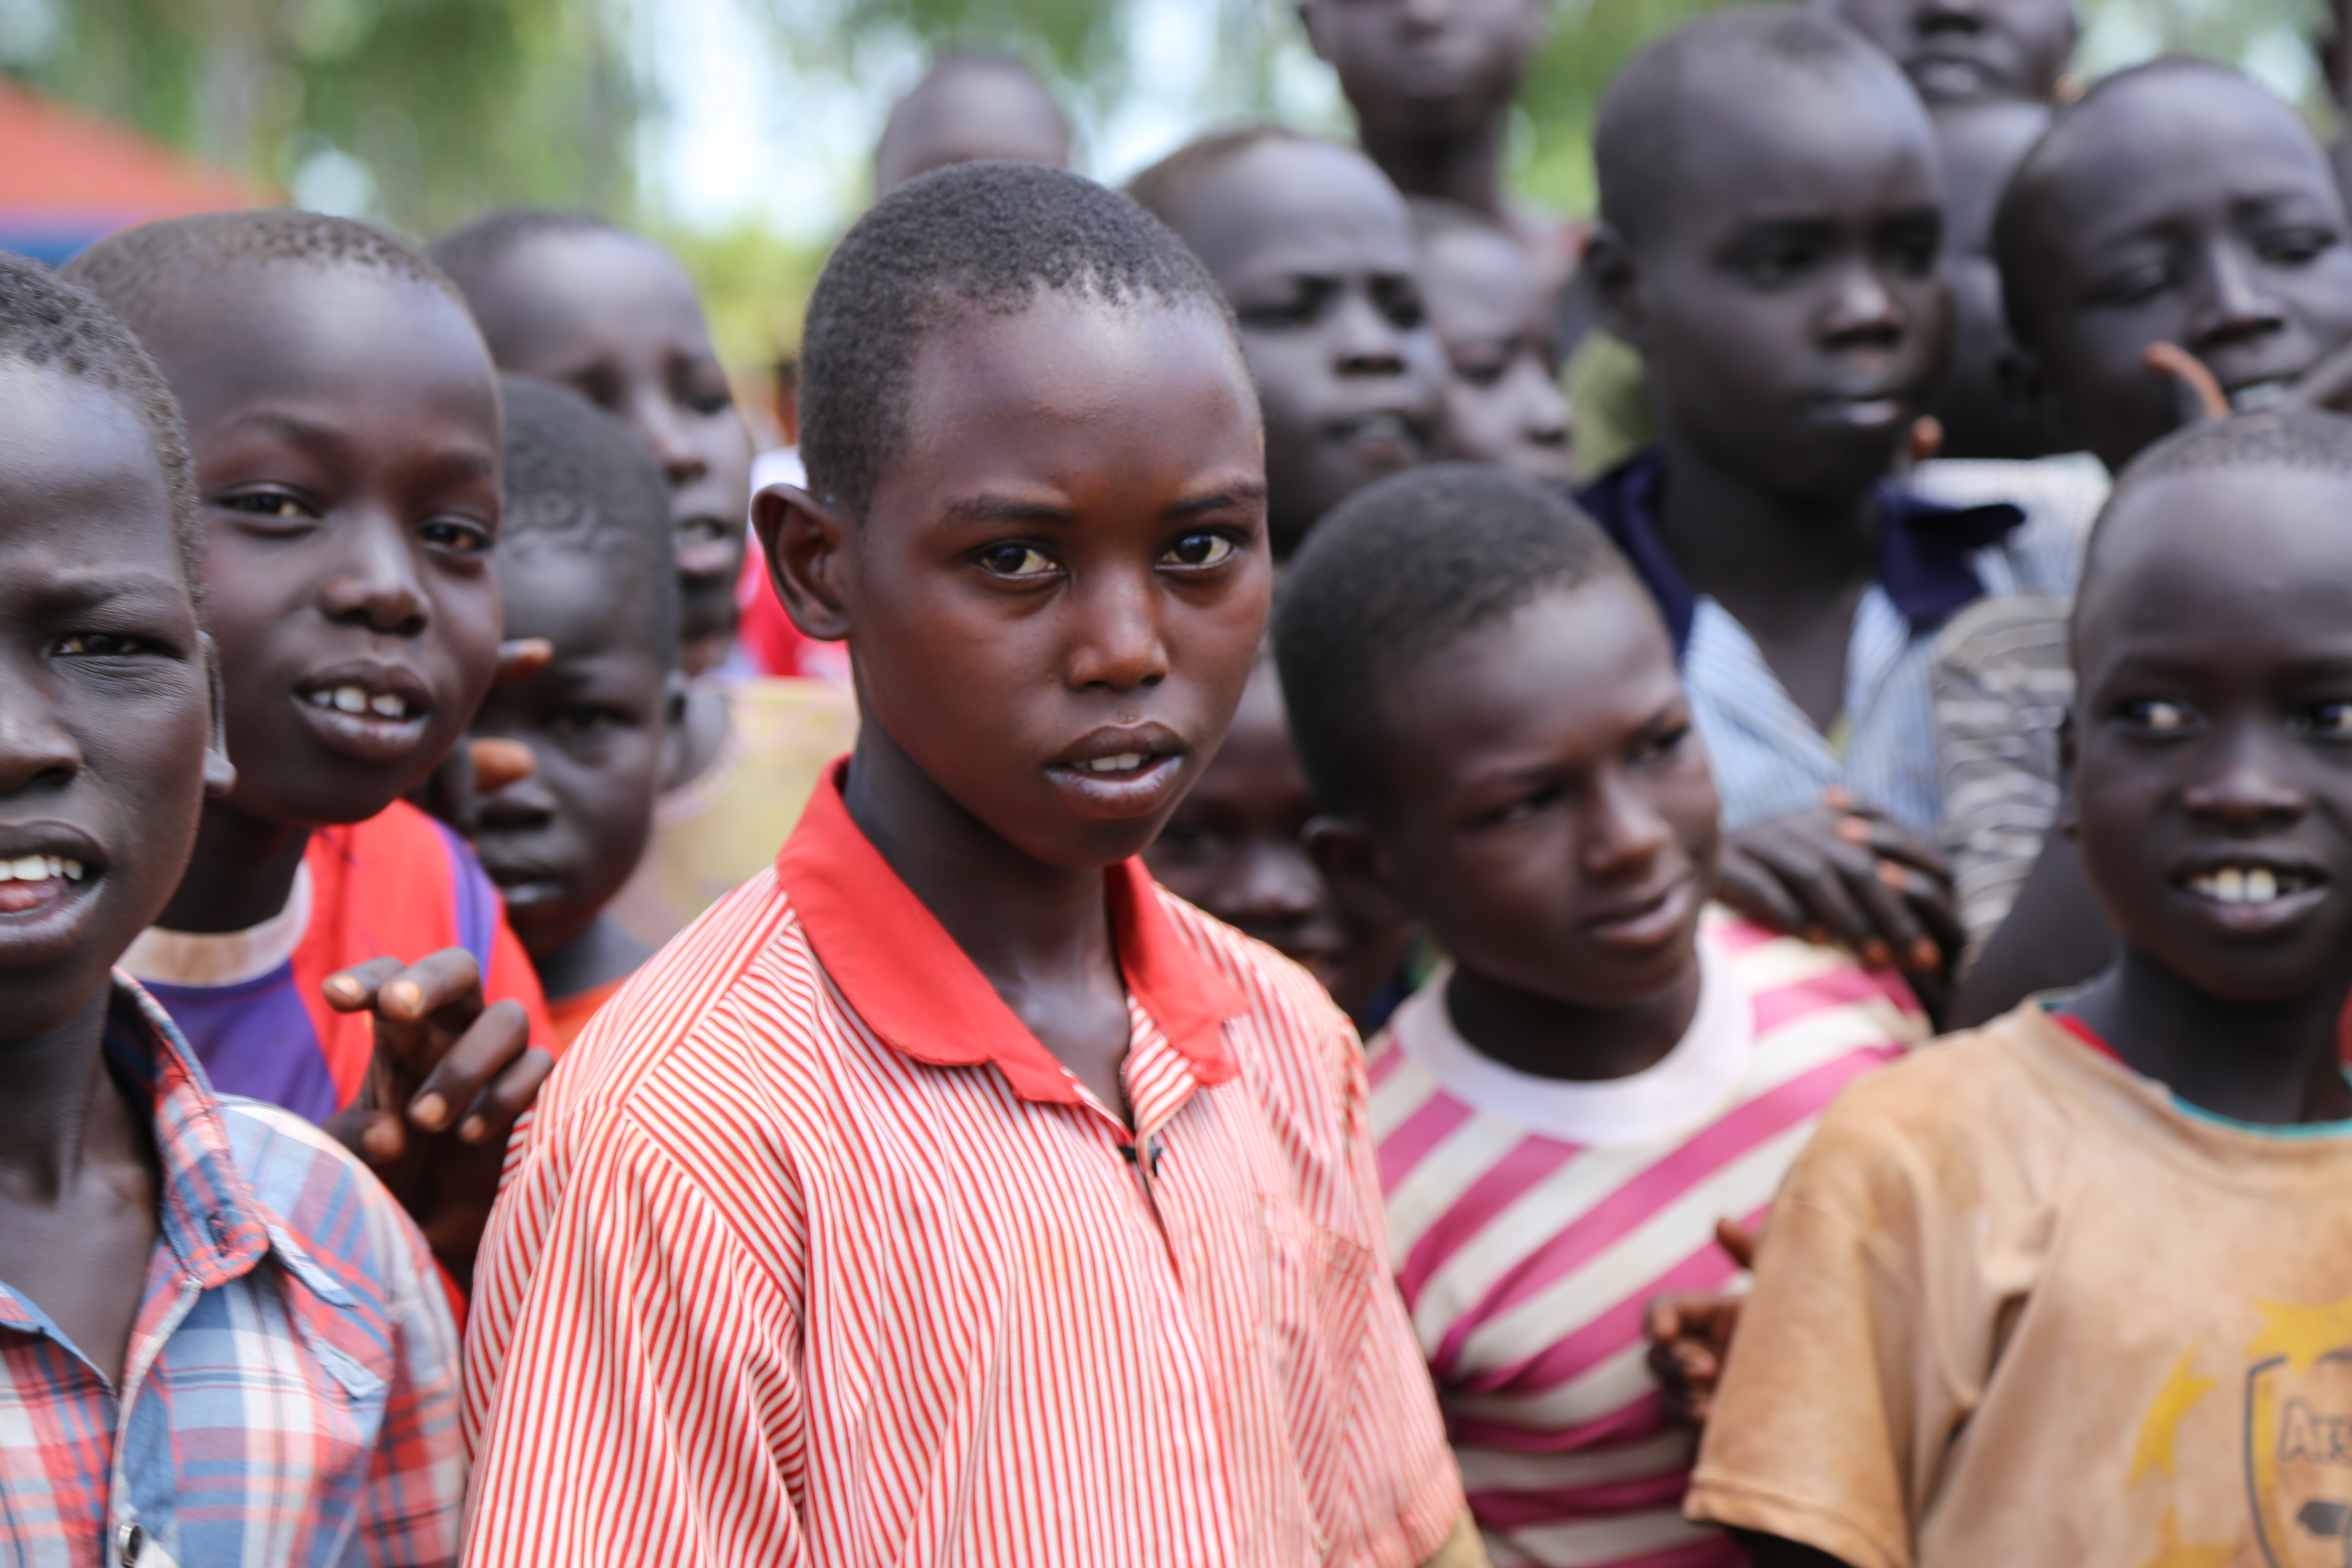 1.Developing countries host 85% of the total refugee population of the world.